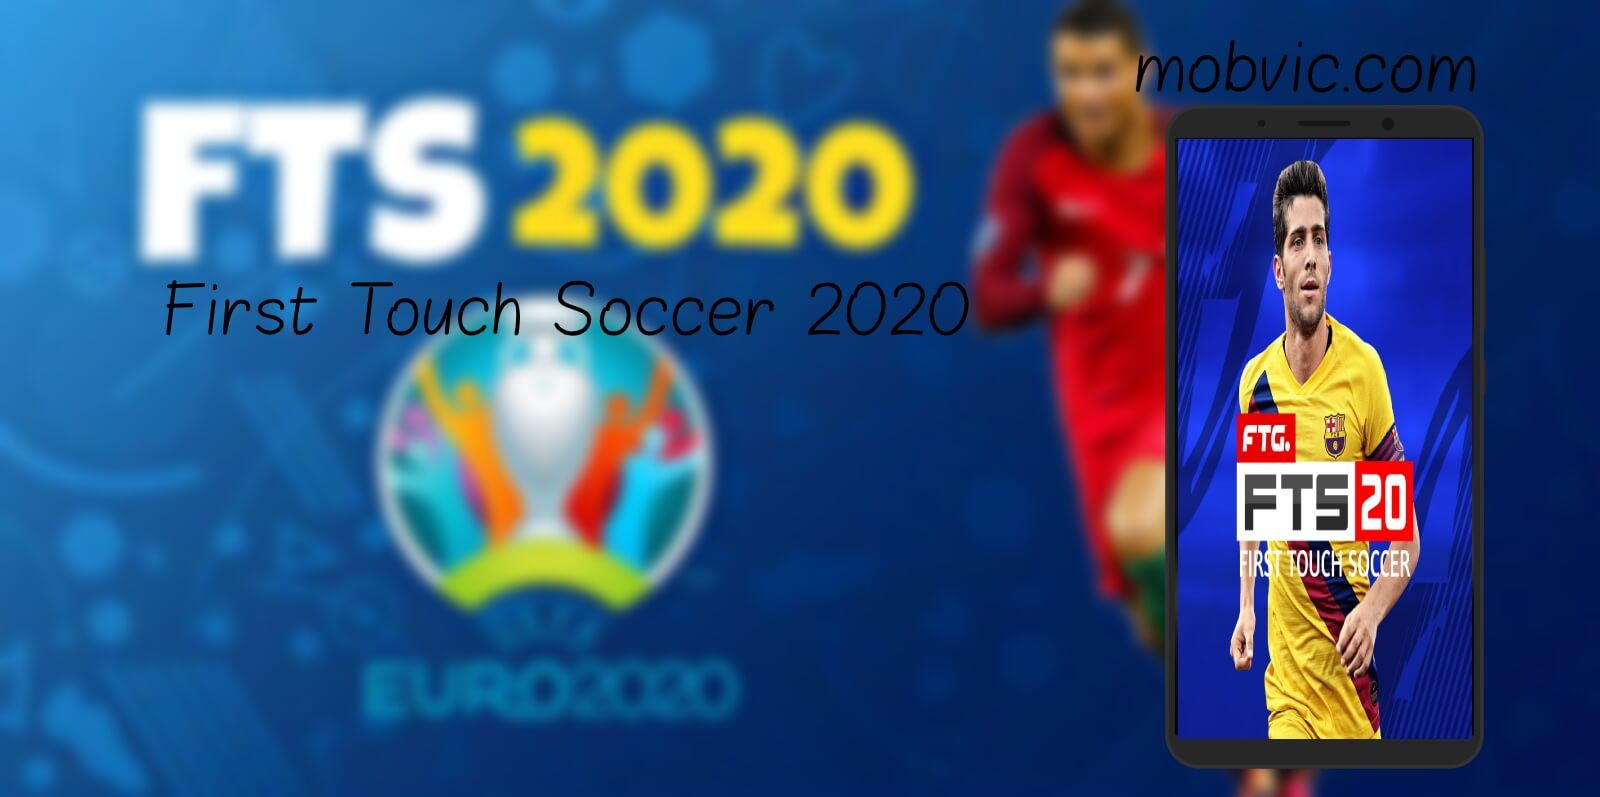 download fts 2020 for android (apk+data) ucl mod